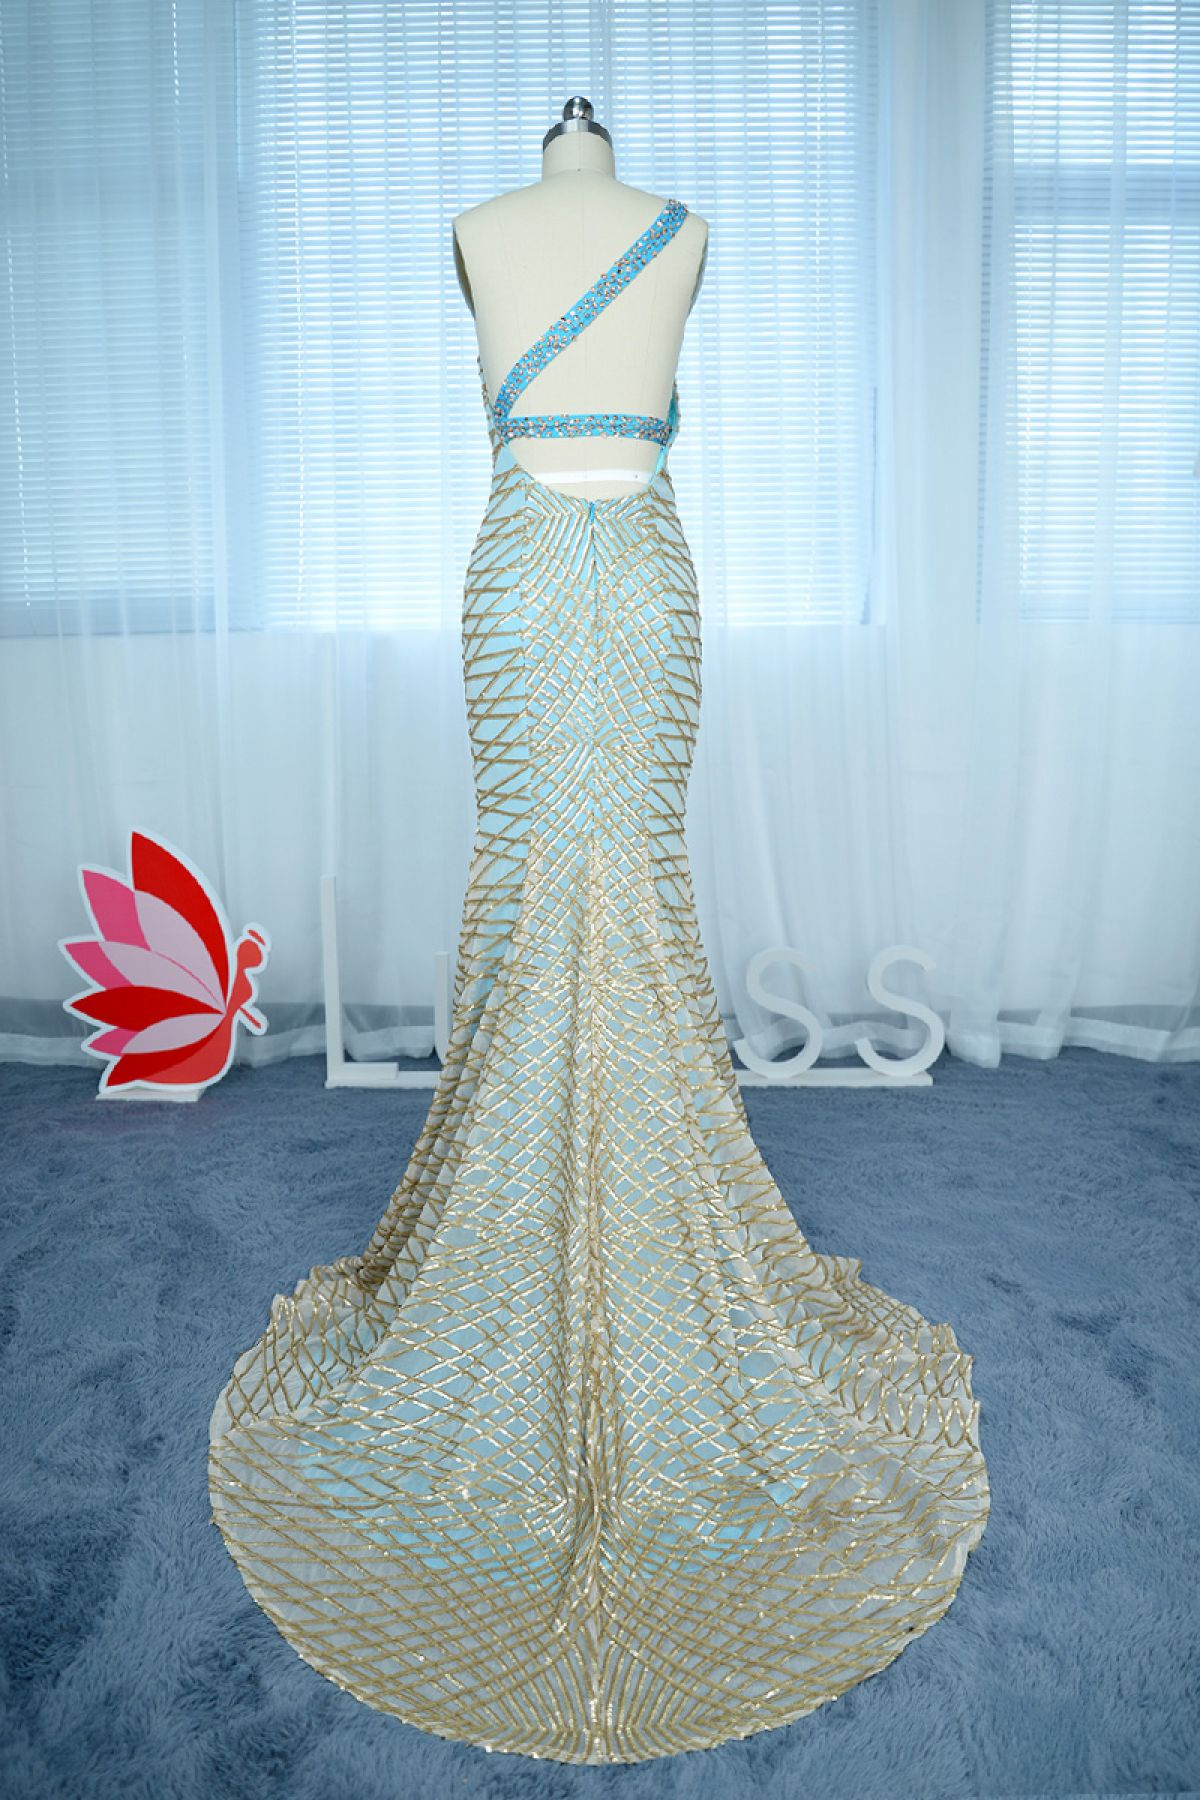 Customized Teal Mermaid Dress with Geometric Gold Sequin Overlay ...